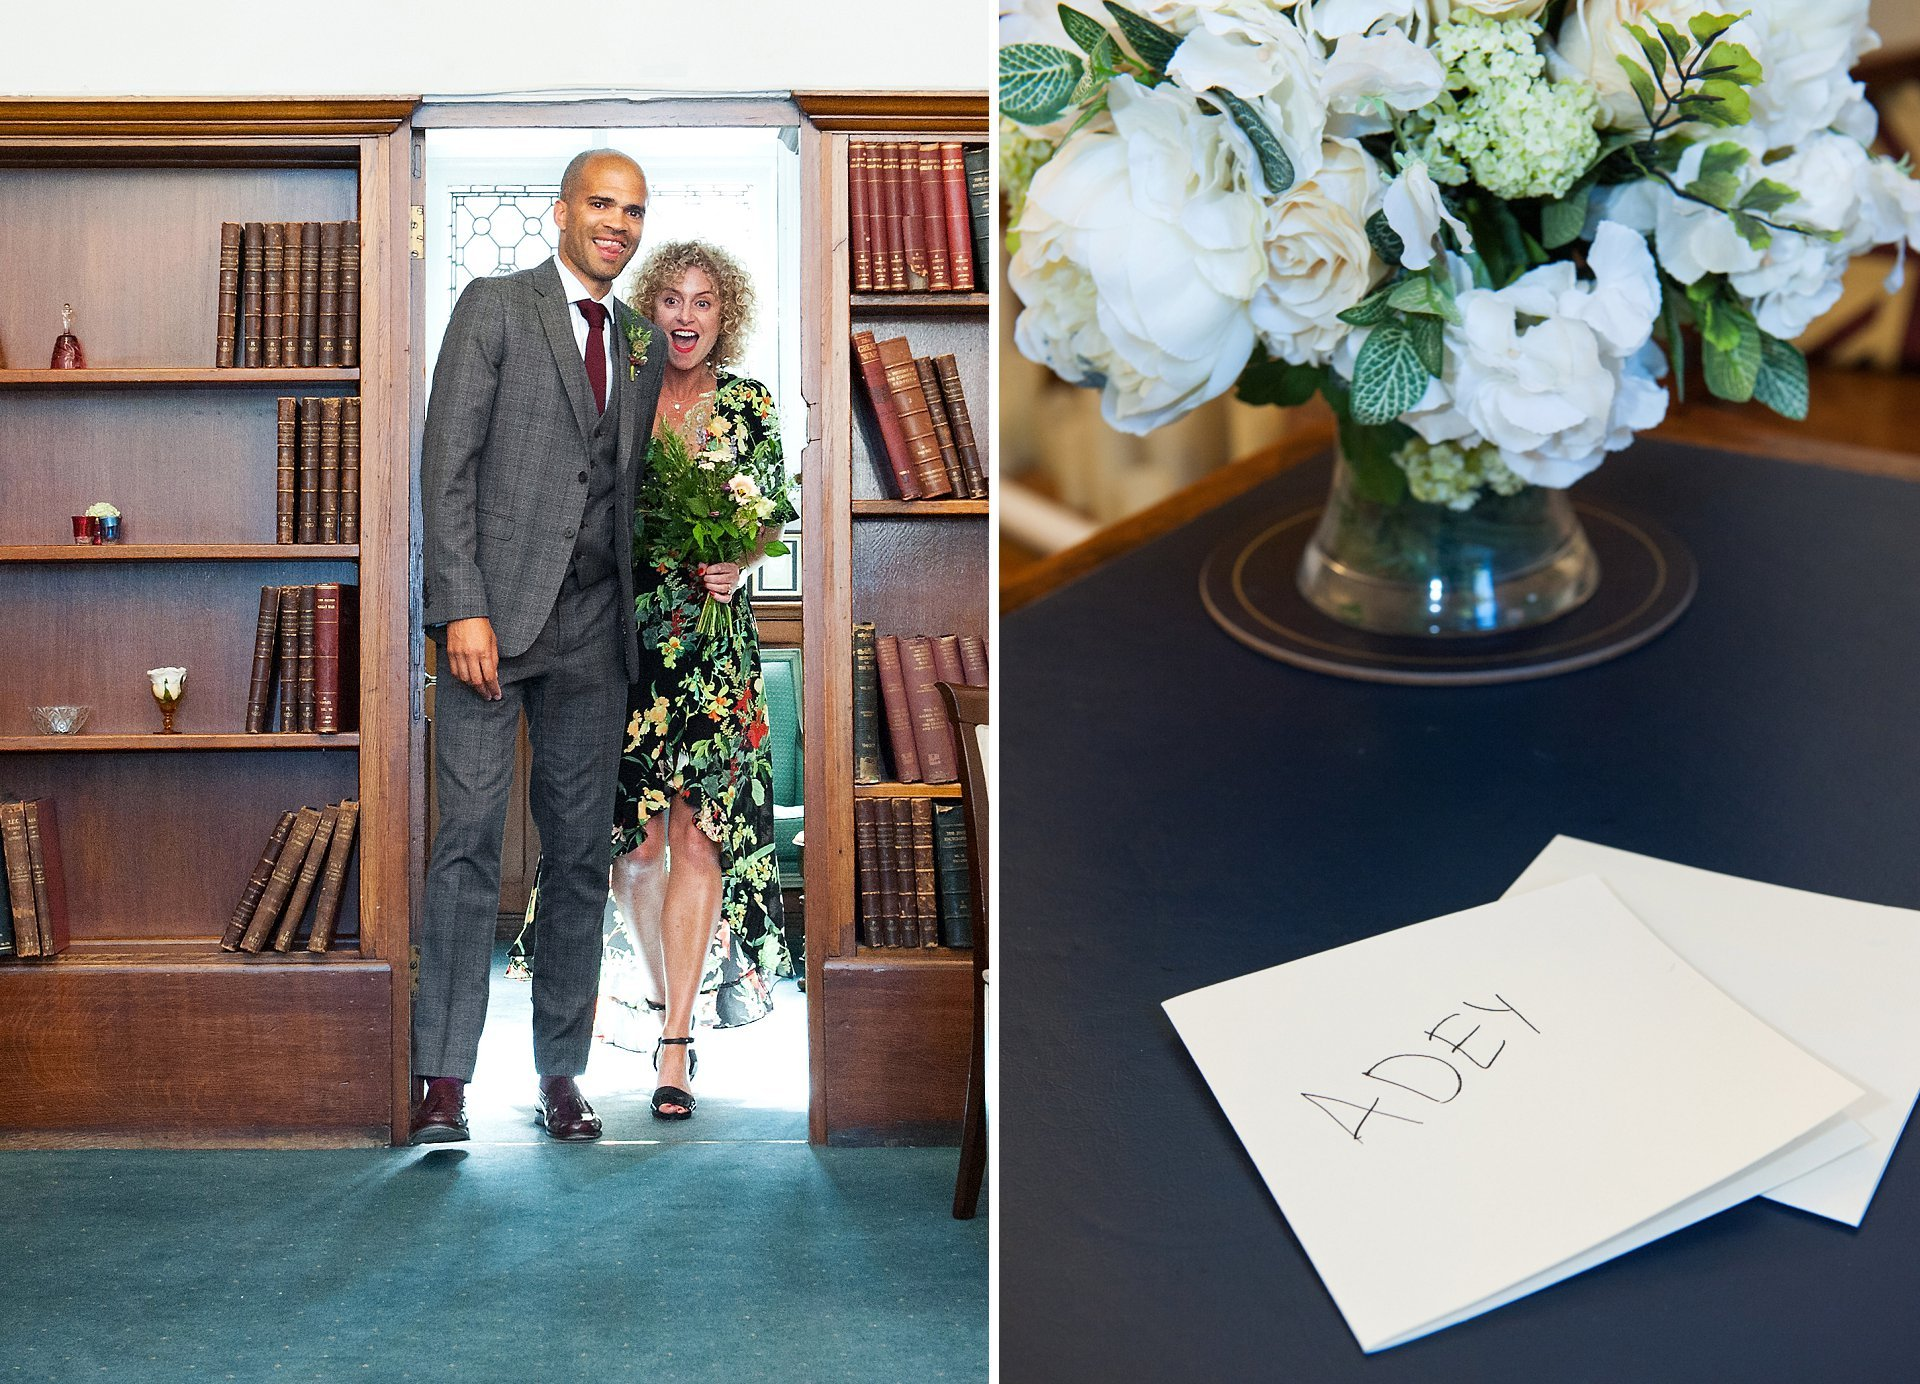 Jodie and Adrian enter the Marylebone Room at Westminster Register Office with beaming smiles. Their personal vows sit on the main ceremony table ready to be read during the ceremony